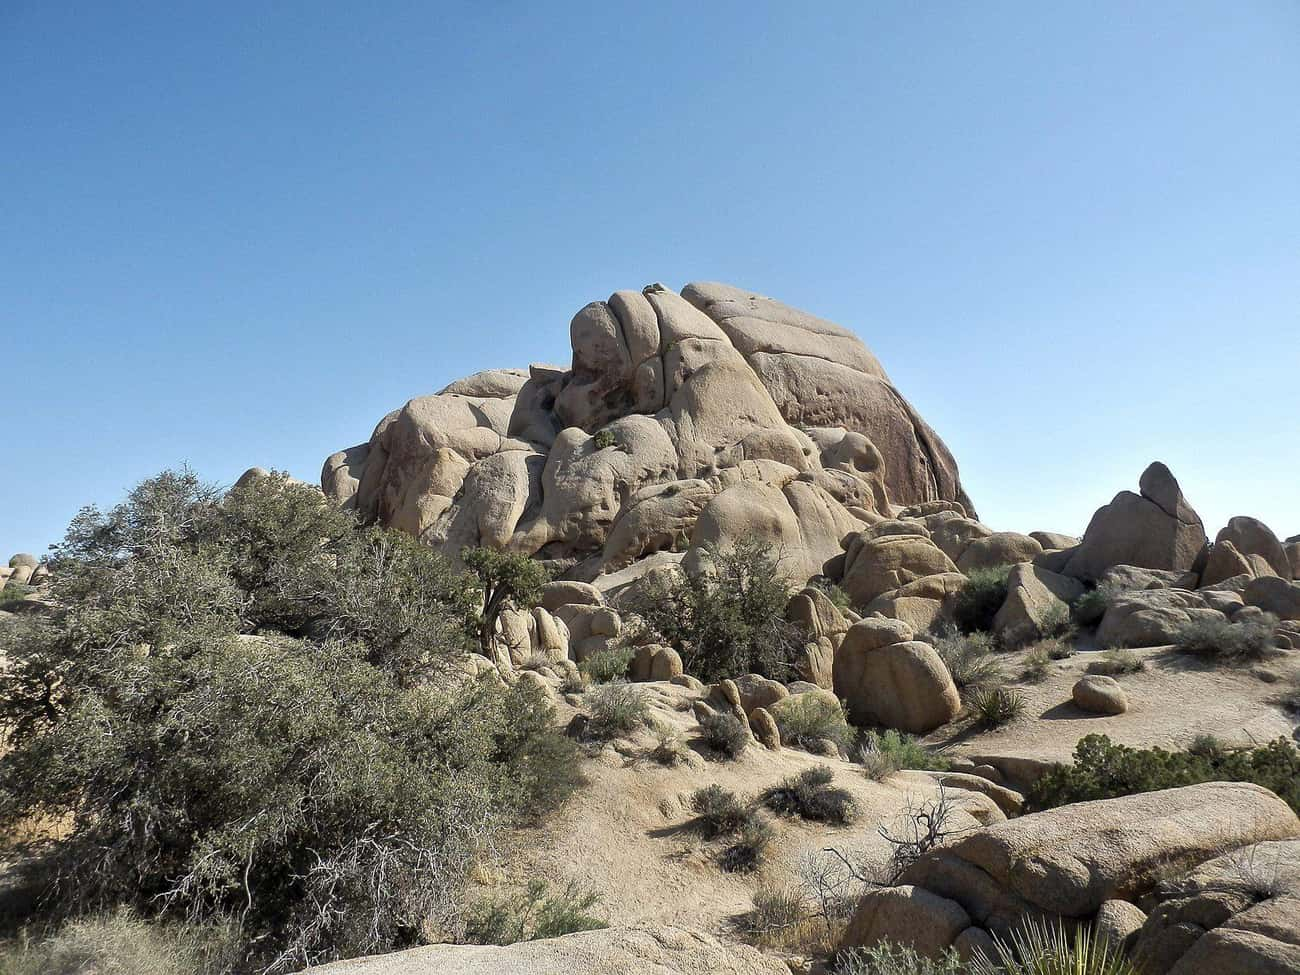 Joshua Tree National Park is listed (or ranked) 2 on the list The Best Camping Spots in Southern California